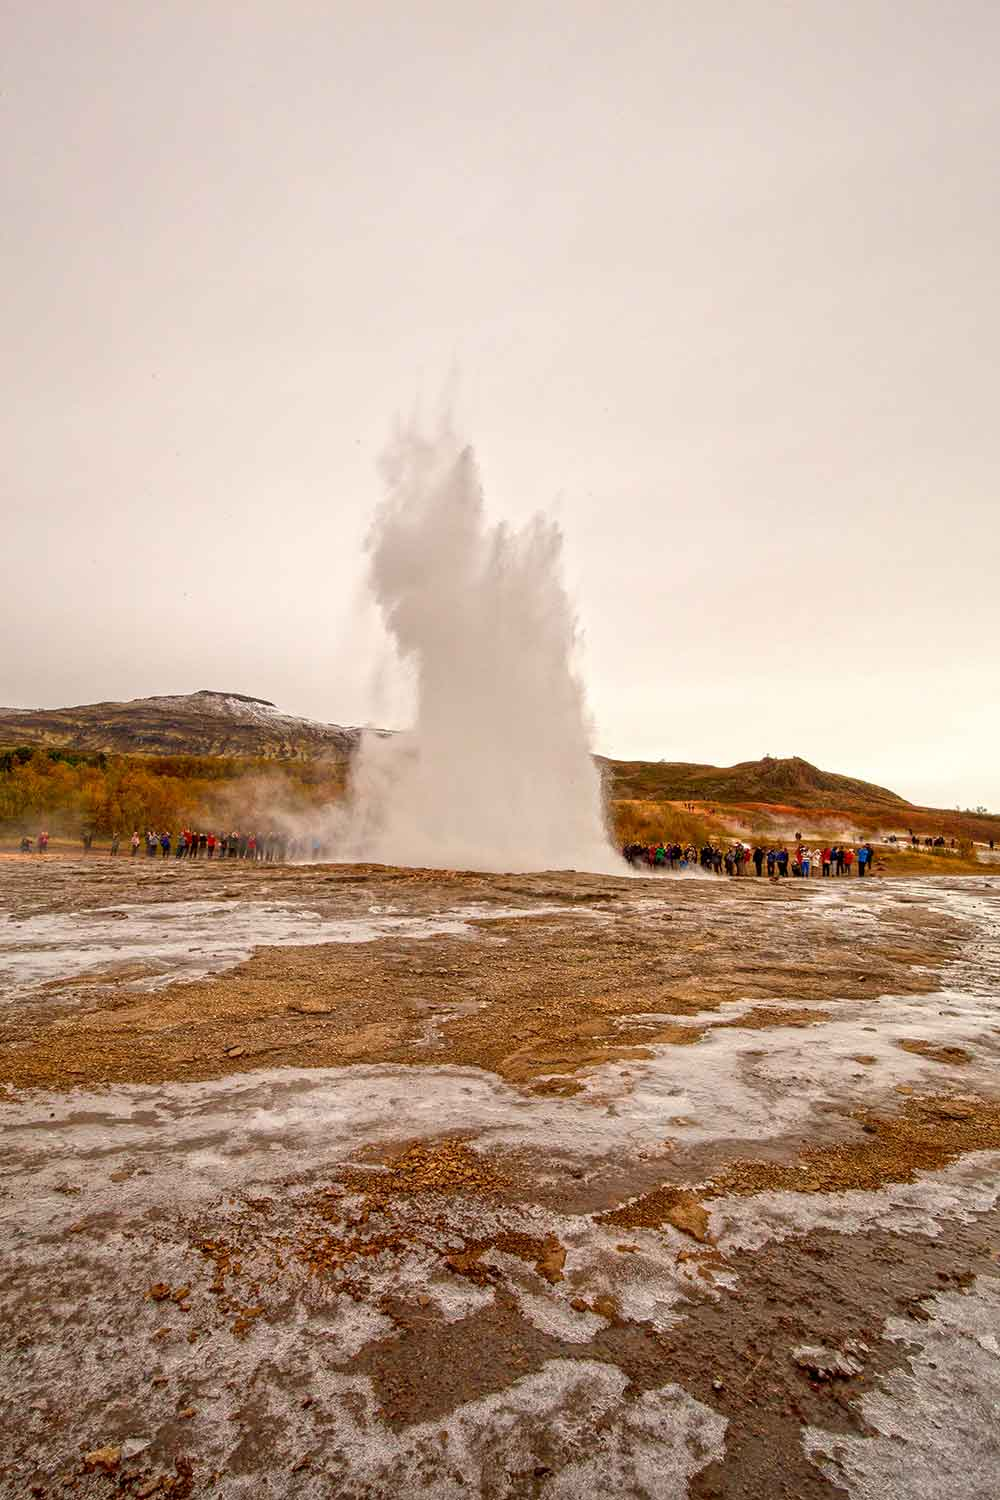 The most active geyser in the area is Strokkur. It sprouts hot water as high as 30 meters into the air every few minutes!